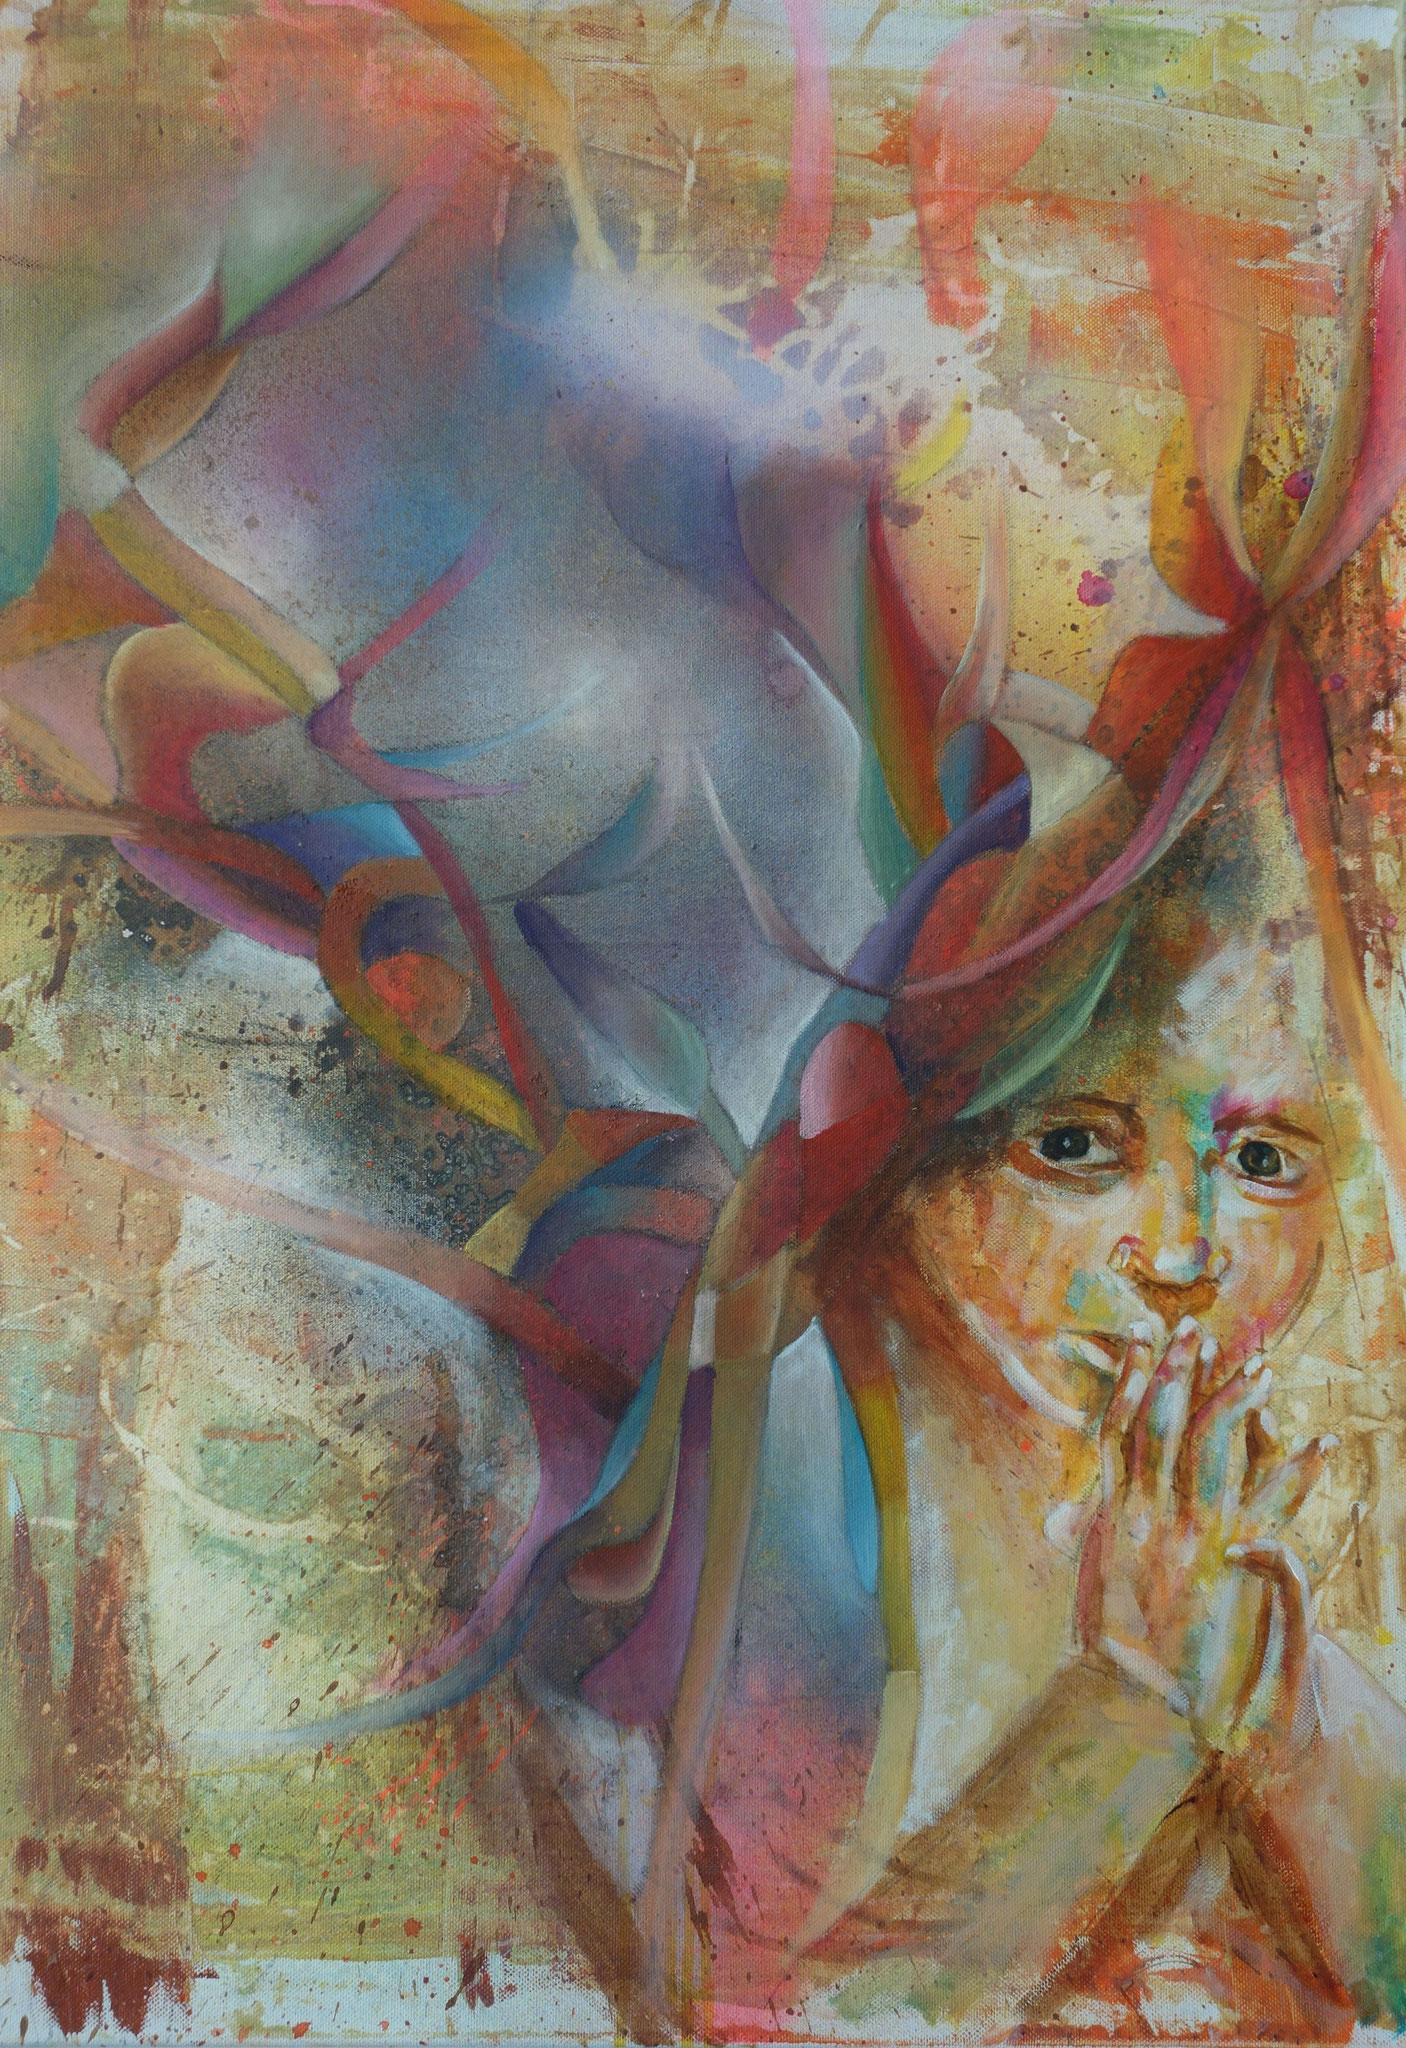 Colorful Dreams I, 2015, 60 x 80 cm, Acrylic on Canvas